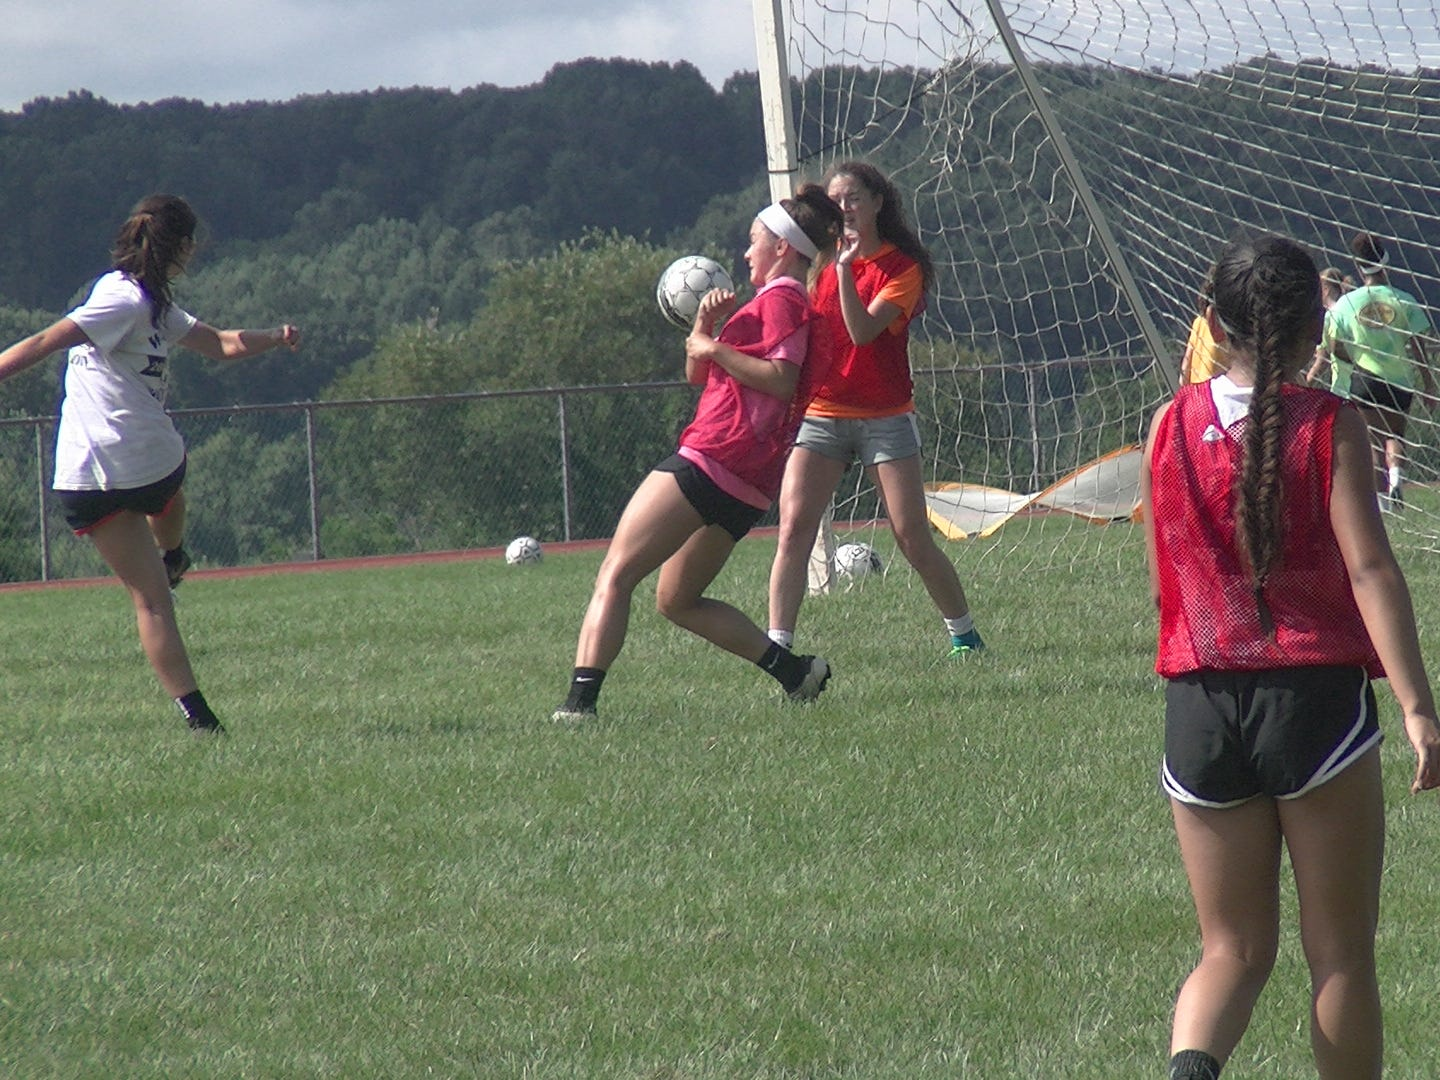 A Susquehannock girls' soccer player takes a shot on net during the first day of fall practice Monday.